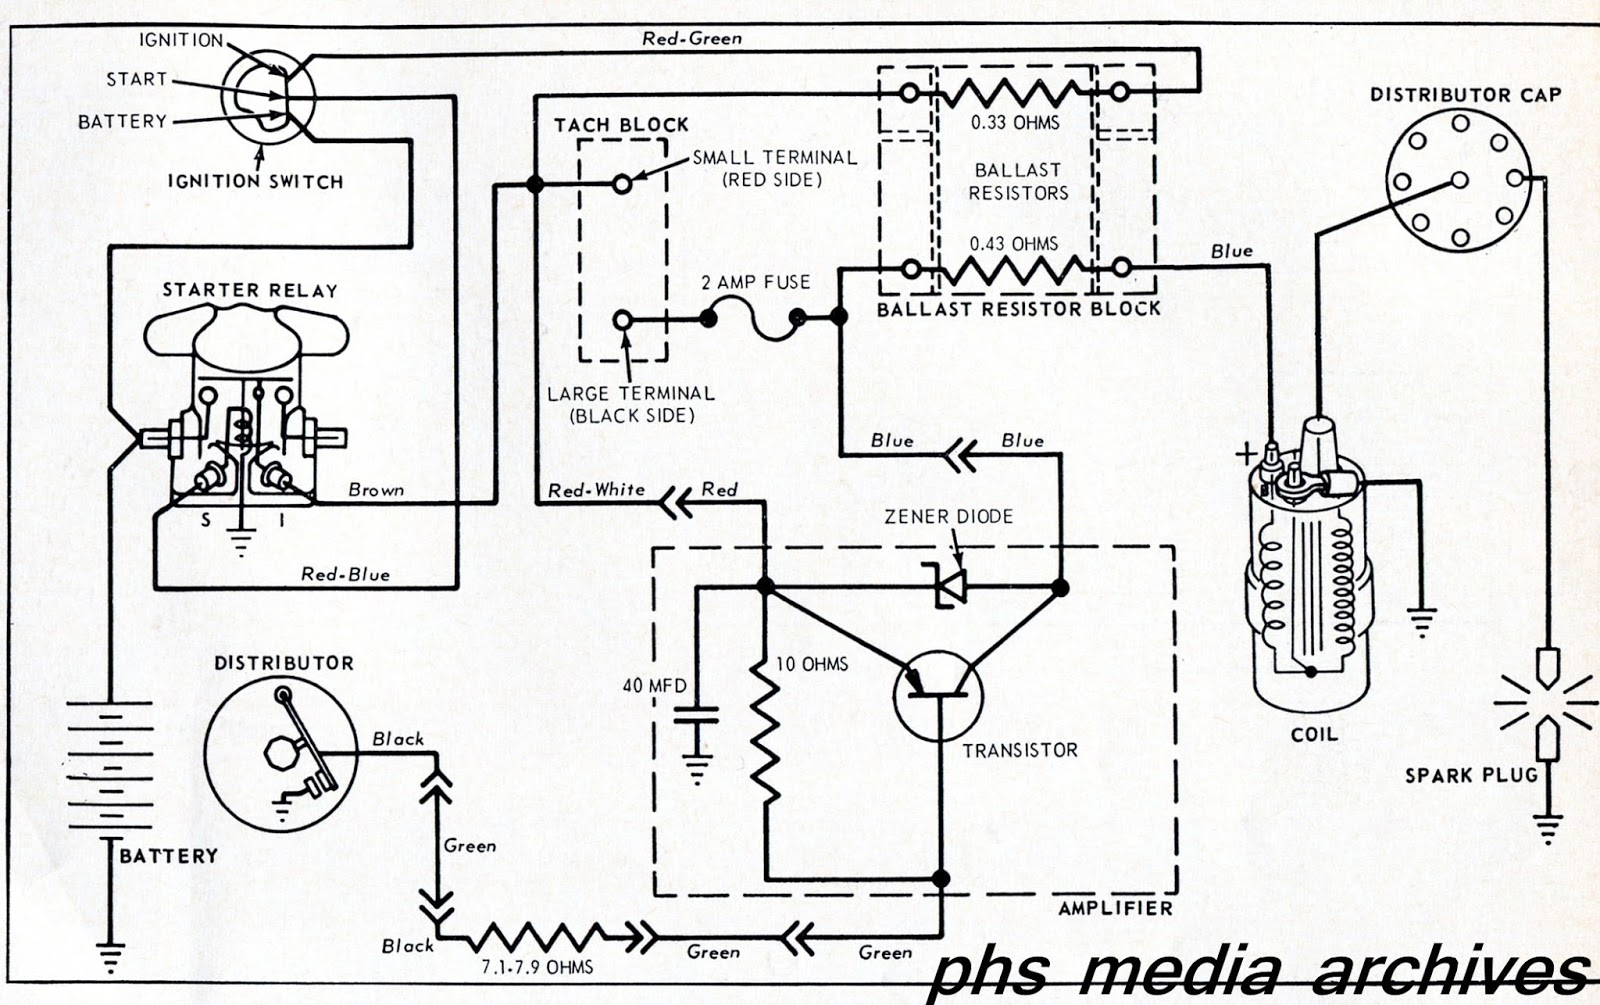 Gm Points Ignition Circuit Diagram